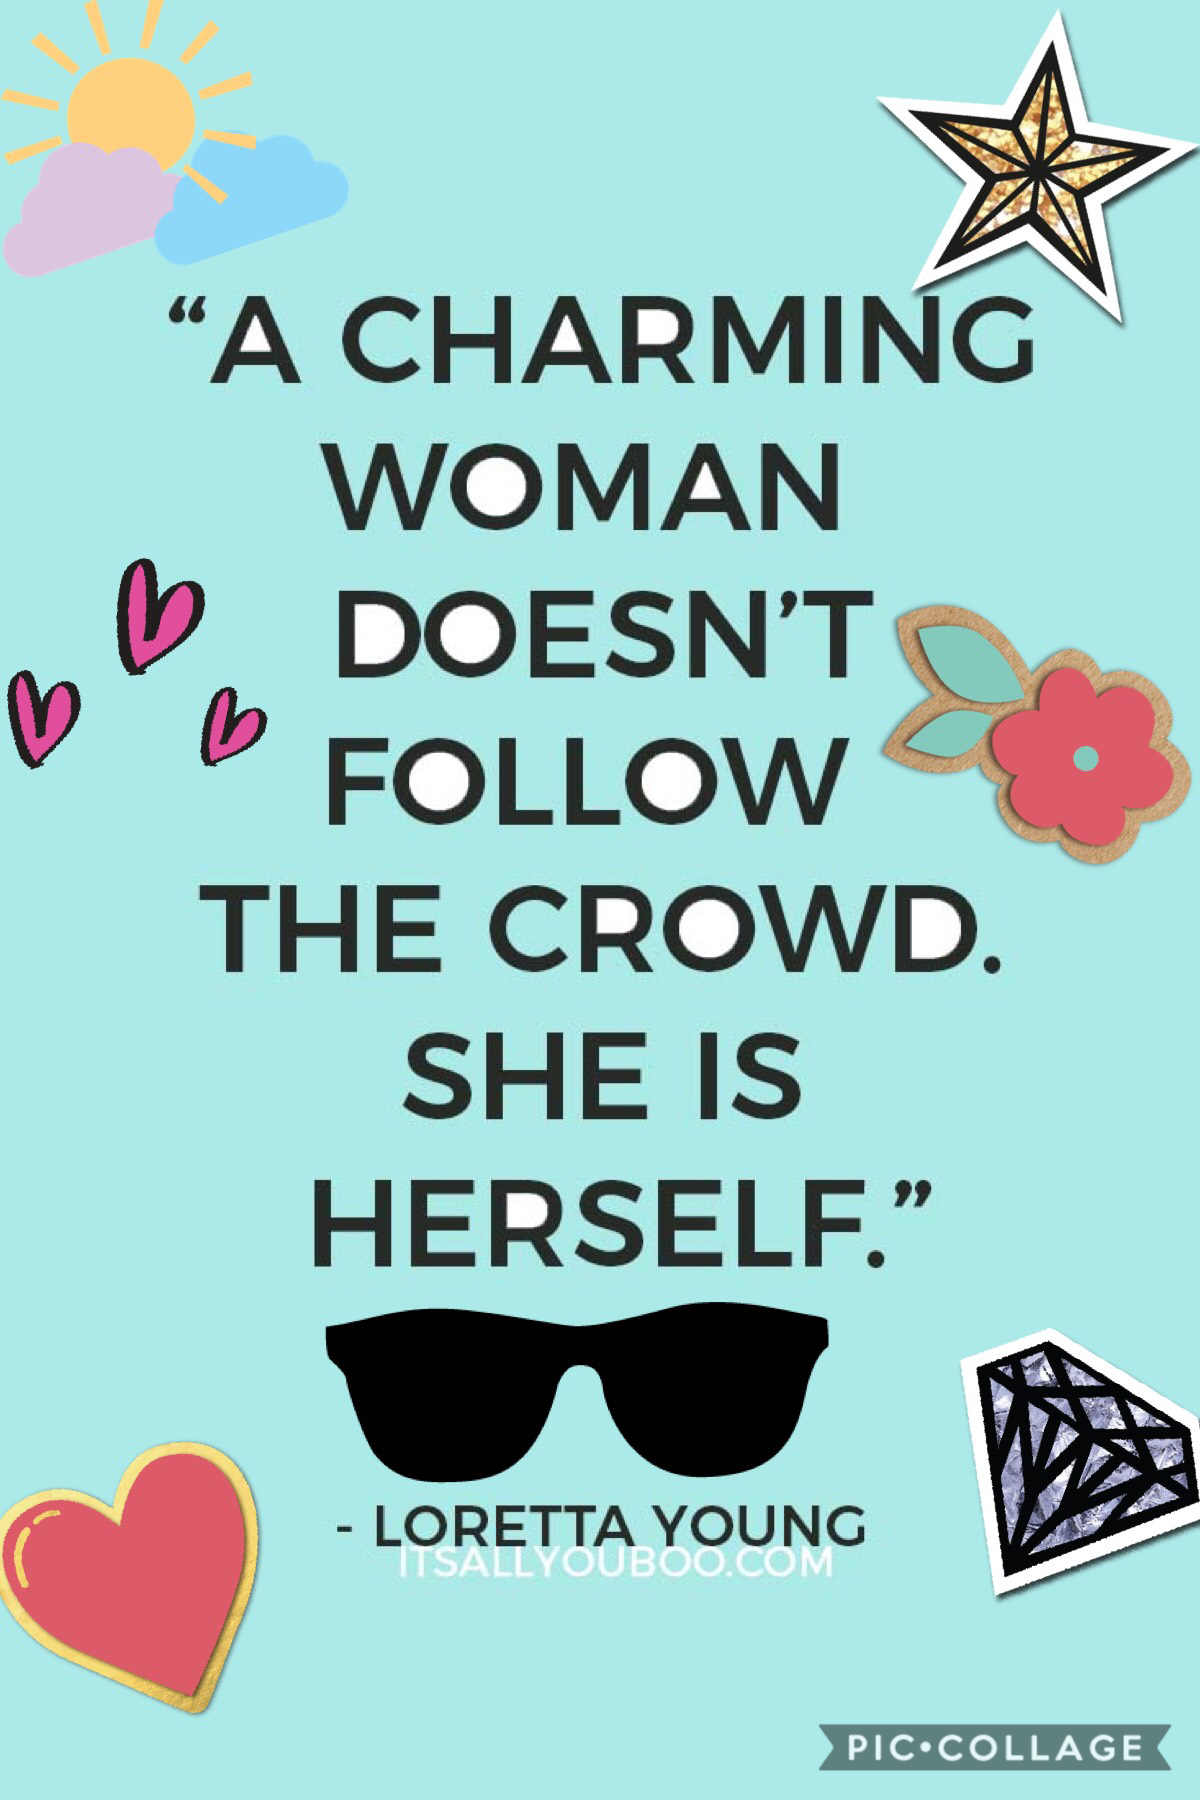 This is a woman's day quote this is one of my favorite quotes. I hope all the woman and girls out there and see this and life out this quote ♥-SOPHIA